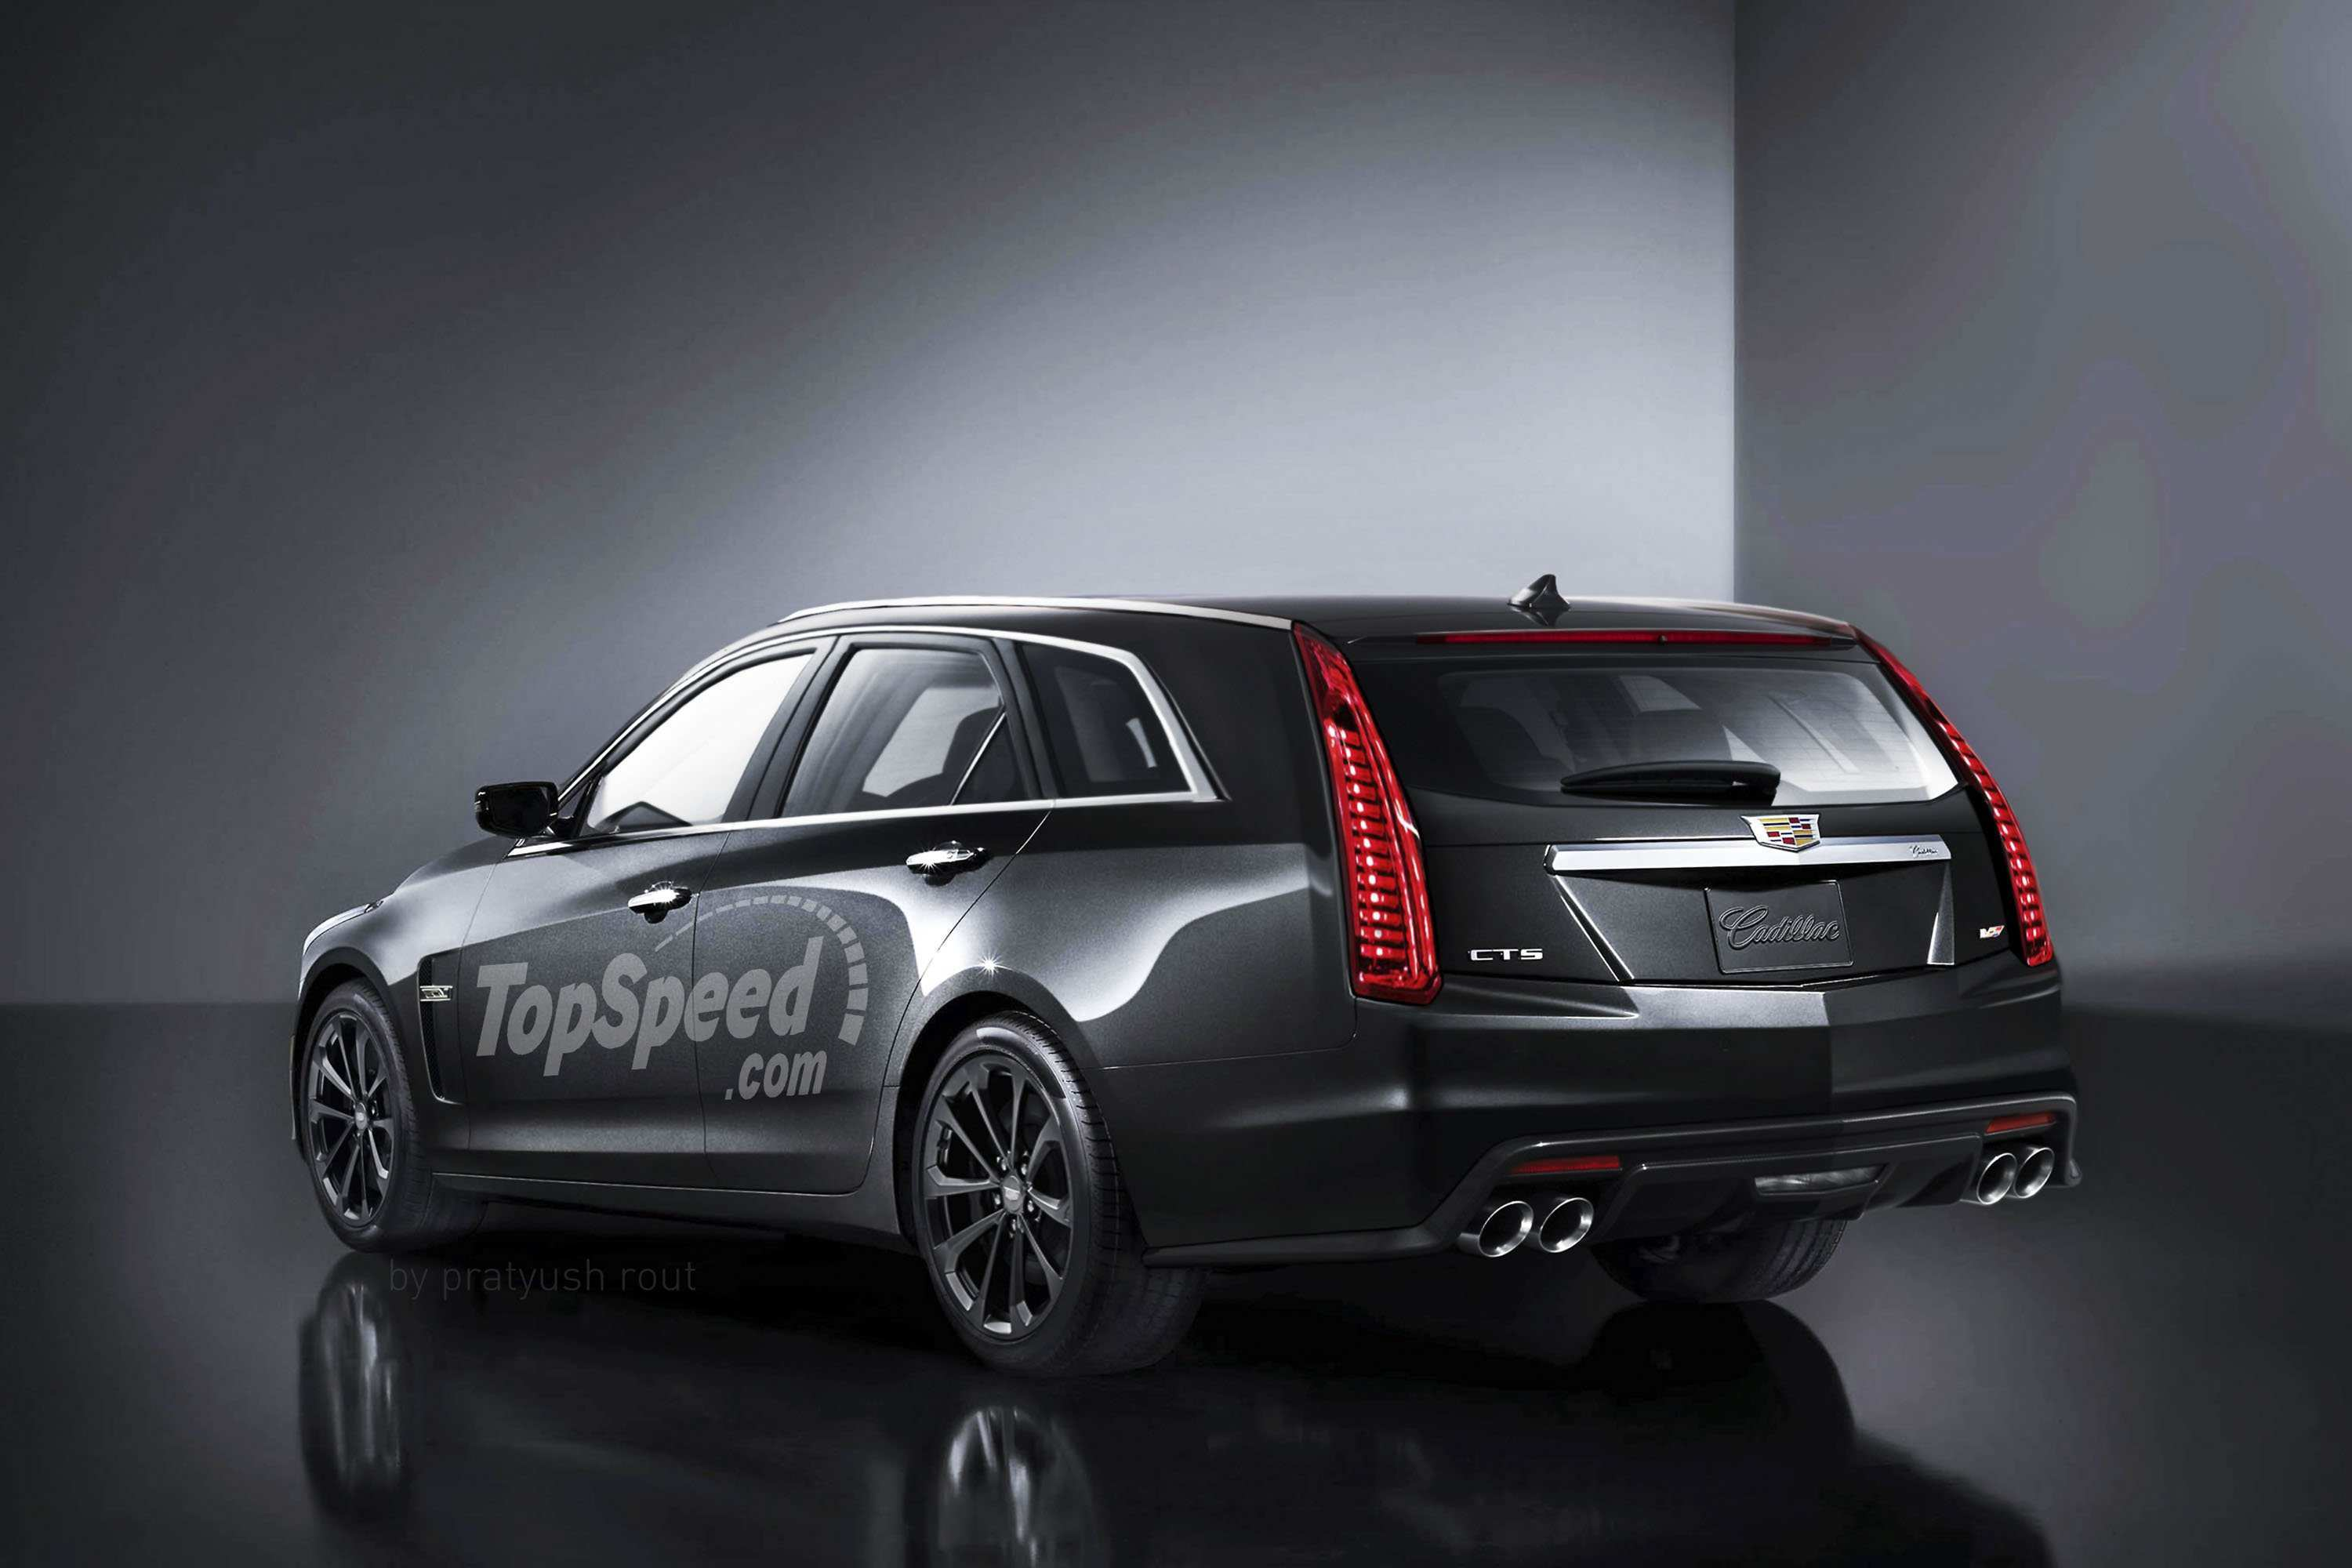 35 The 2020 Candillac Xts Performance And New Engine